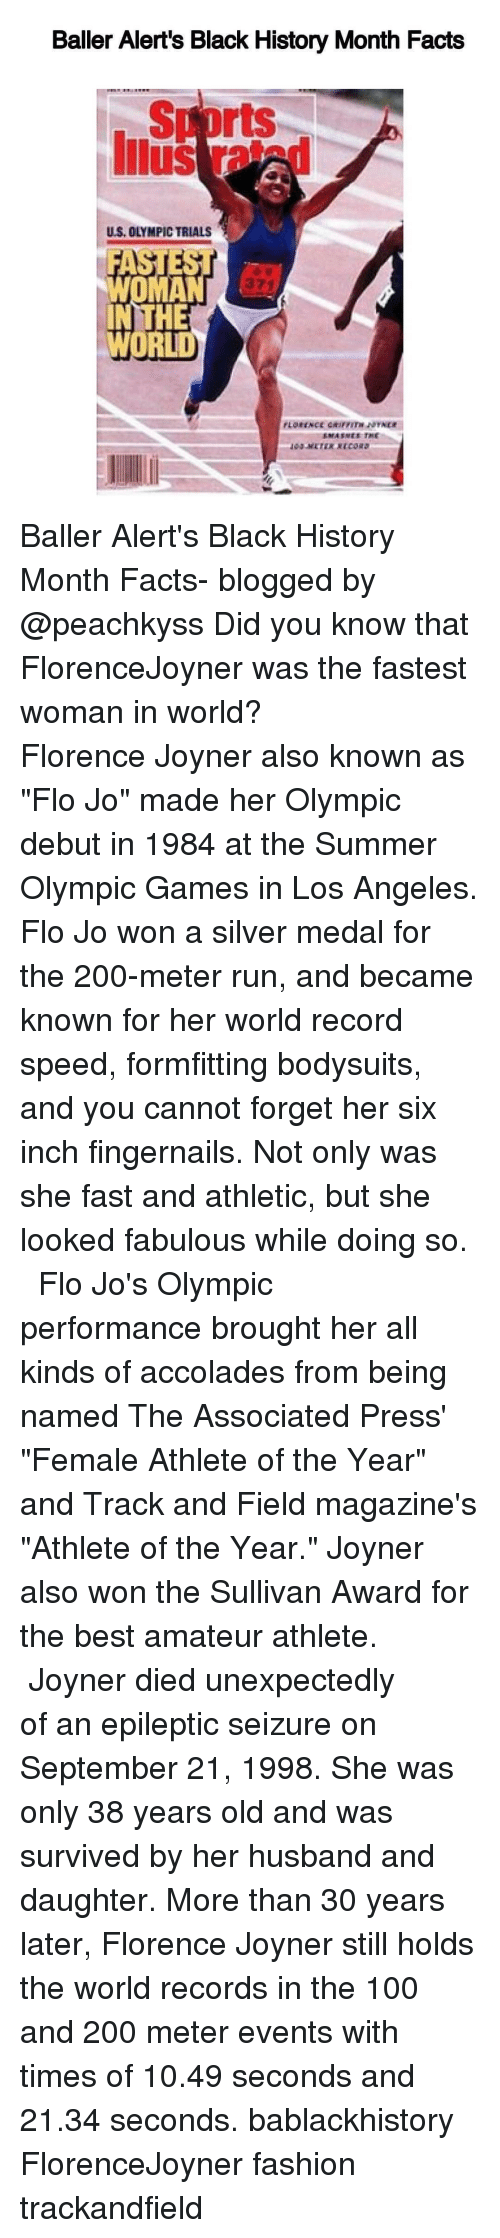 """Epileptical: Baller Alert's Black History Month Facts  rts  US, OLYMPICTRIALS  HE  WORLD Baller Alert's Black History Month Facts- blogged by @peachkyss Did you know that FlorenceJoyner was the fastest woman in world? ⠀⠀⠀⠀⠀⠀⠀⠀⠀ ⠀⠀⠀⠀⠀⠀⠀⠀⠀ Florence Joyner also known as """"Flo Jo"""" made her Olympic debut in 1984 at the Summer Olympic Games in Los Angeles. Flo Jo won a silver medal for the 200-meter run, and became known for her world record speed, formfitting bodysuits, and you cannot forget her six inch fingernails. Not only was she fast and athletic, but she looked fabulous while doing so. ⠀⠀⠀⠀⠀⠀⠀⠀⠀ ⠀⠀⠀⠀⠀⠀⠀⠀⠀ Flo Jo's Olympic performance brought her all kinds of accolades from being named The Associated Press' """"Female Athlete of the Year"""" and Track and Field magazine's """"Athlete of the Year."""" Joyner also won the Sullivan Award for the best amateur athlete. ⠀⠀⠀⠀⠀⠀⠀⠀⠀ ⠀⠀⠀⠀⠀⠀⠀⠀⠀ Joyner died unexpectedly of an epileptic seizure on September 21, 1998. She was only 38 years old and was survived by her husband and daughter. More than 30 years later, Florence Joyner still holds the world records in the 100 and 200 meter events with times of 10.49 seconds and 21.34 seconds. bablackhistory FlorenceJoyner fashion trackandfield"""